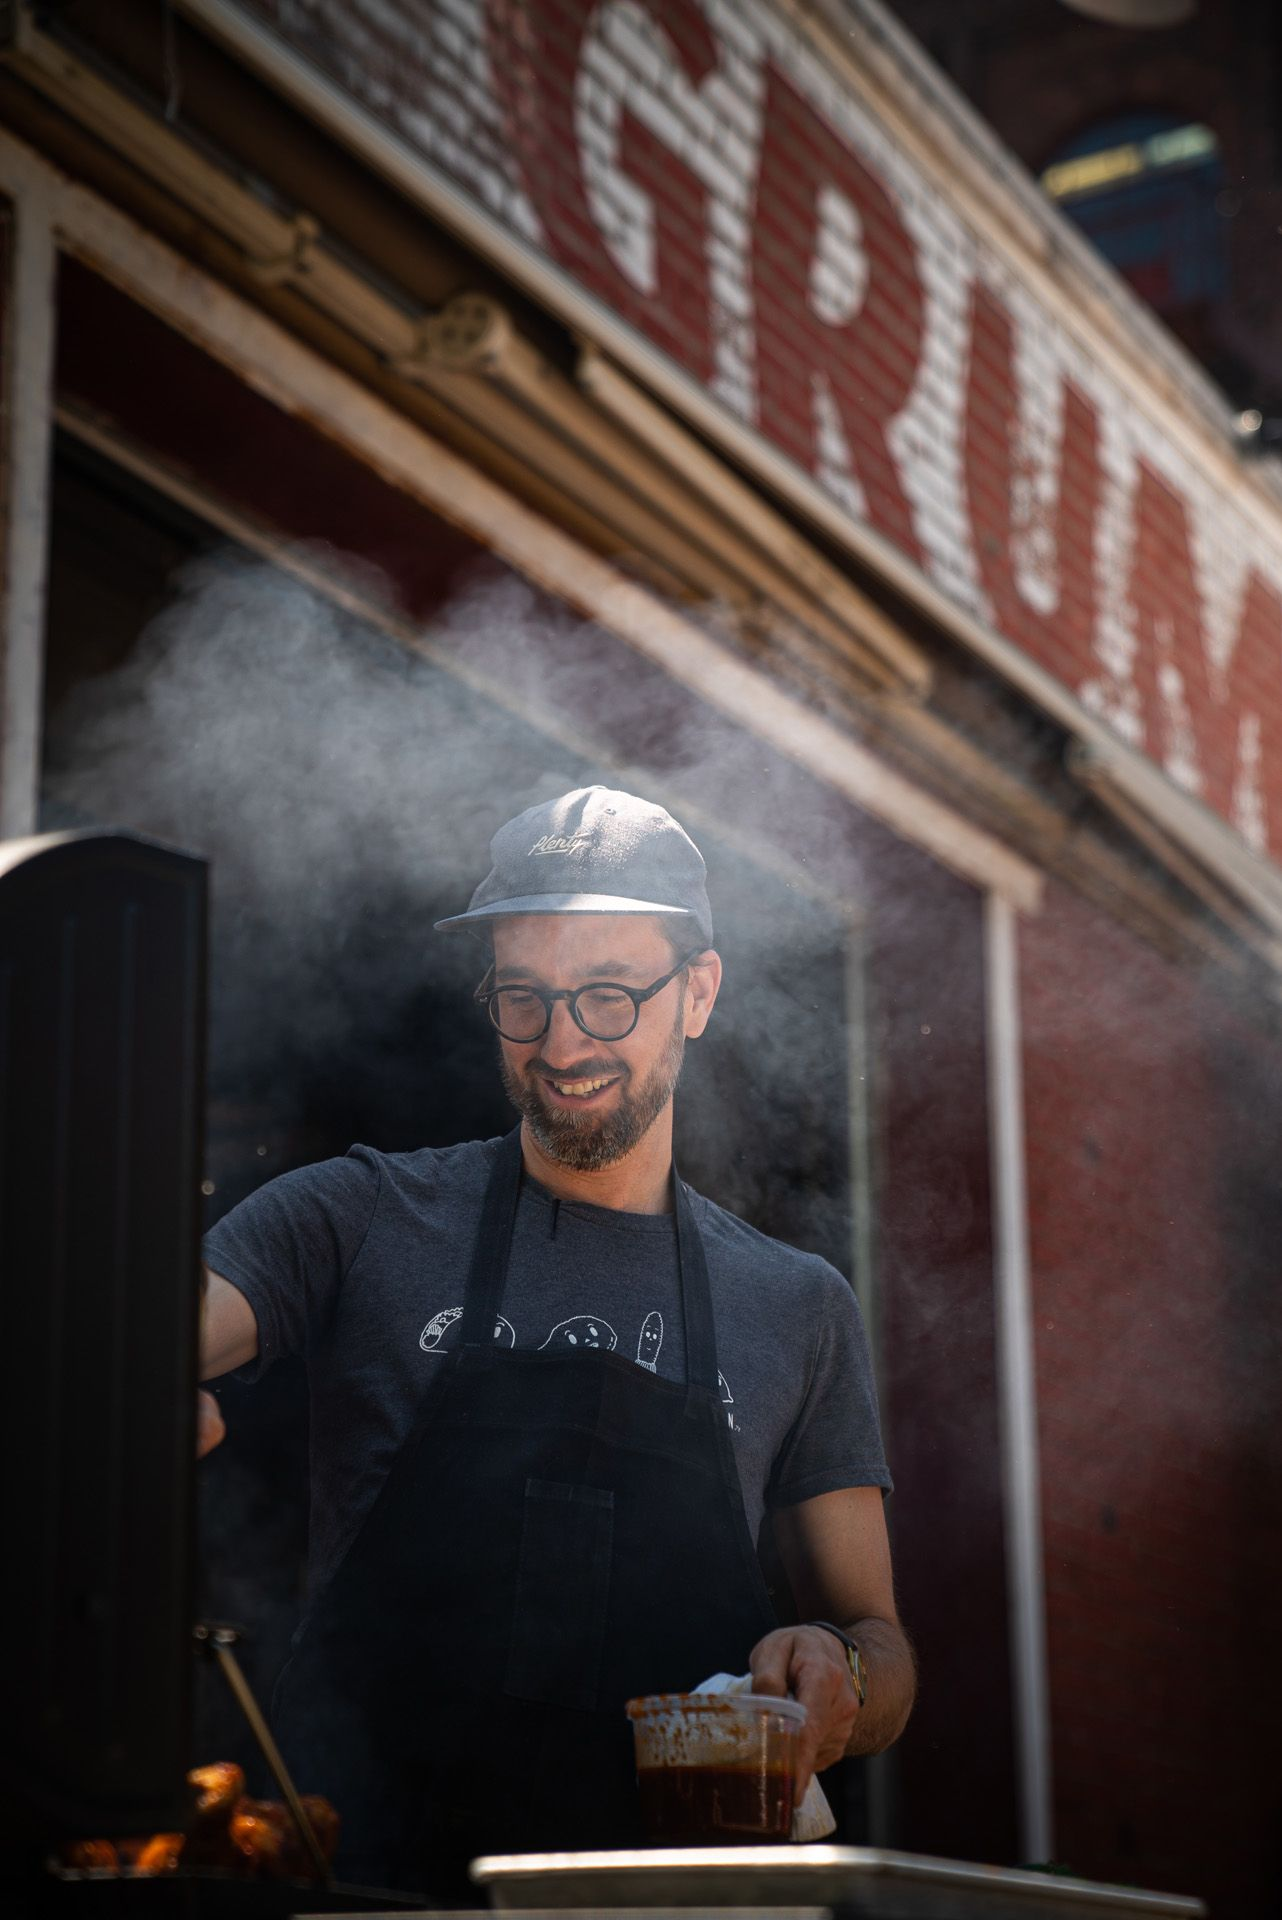 chef Sebastian Harrisson-Cloutier grilling meat on the barbecue by Bruno Florin for Van Houtte 100th anniversary